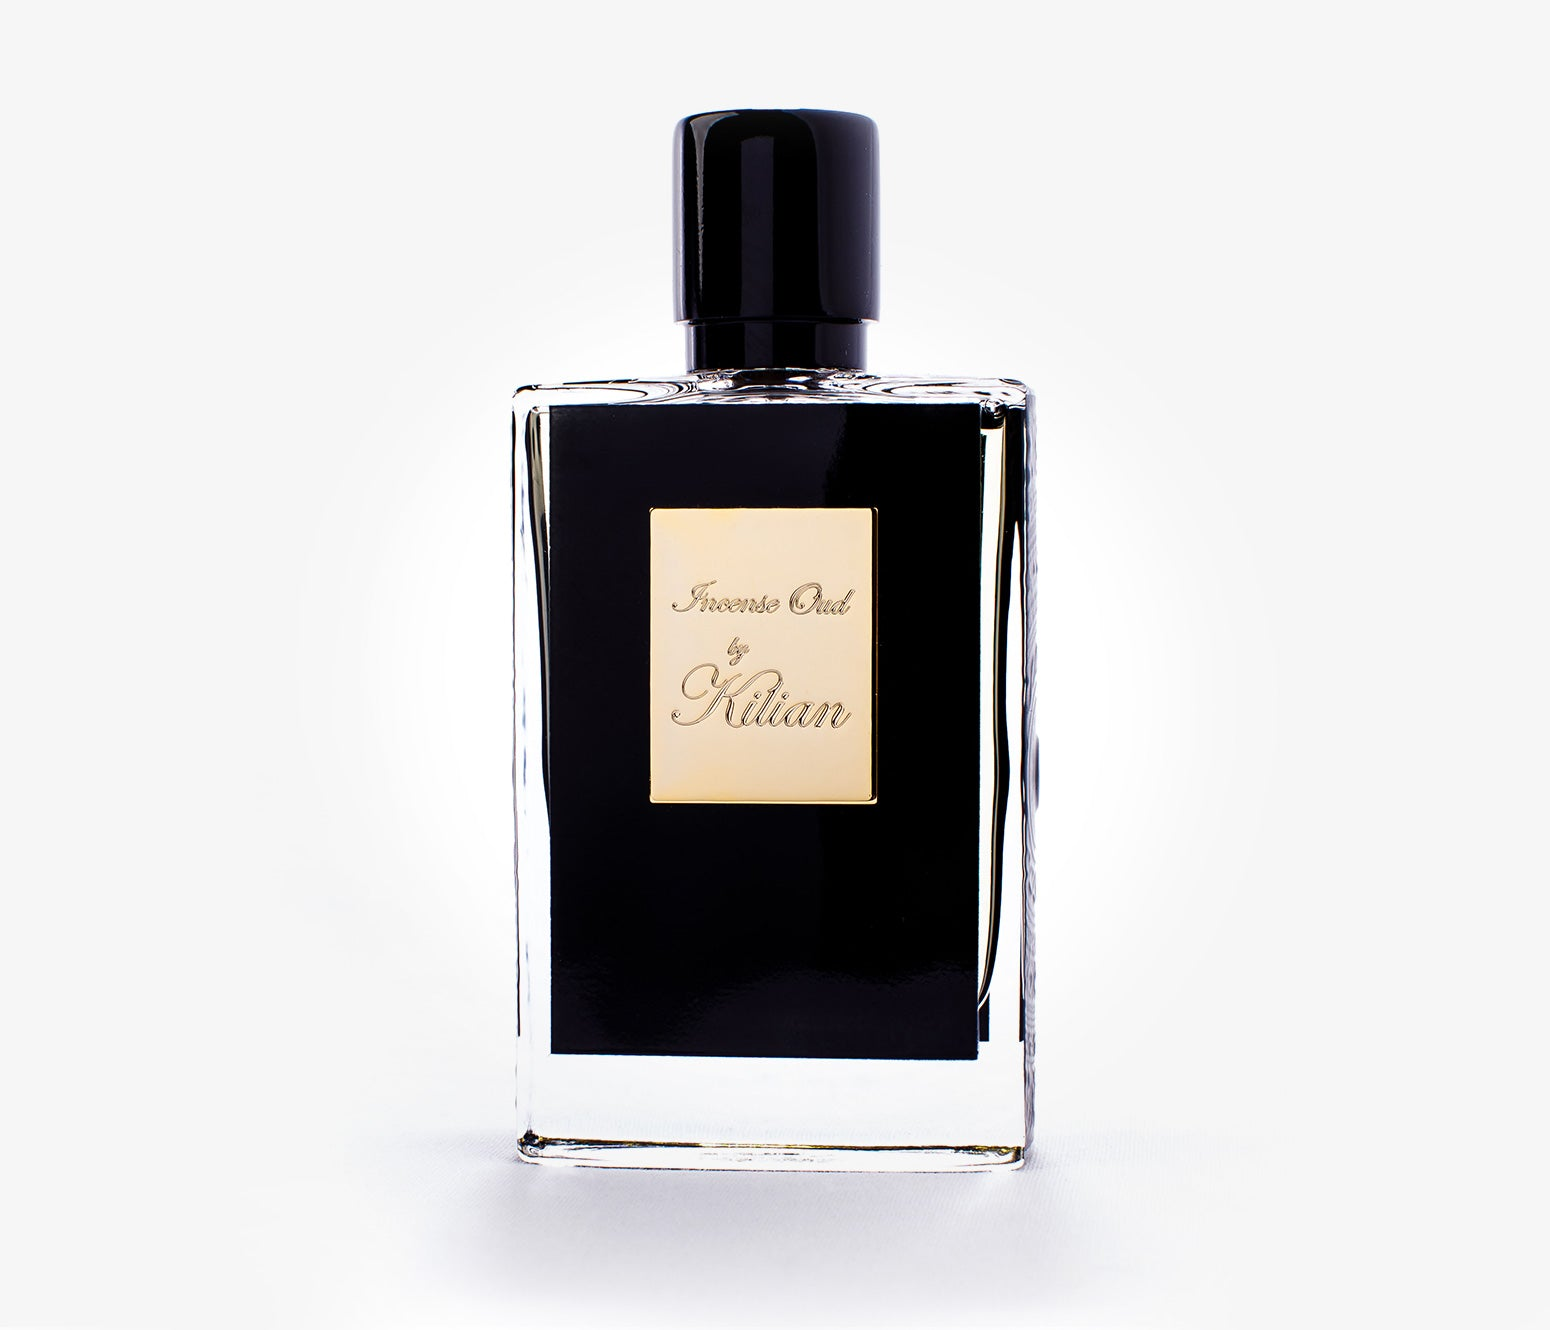 Kilian Paris - Incense Oud - 50ml - SFS003 - Product Image - Fragrance - Les Senteurs